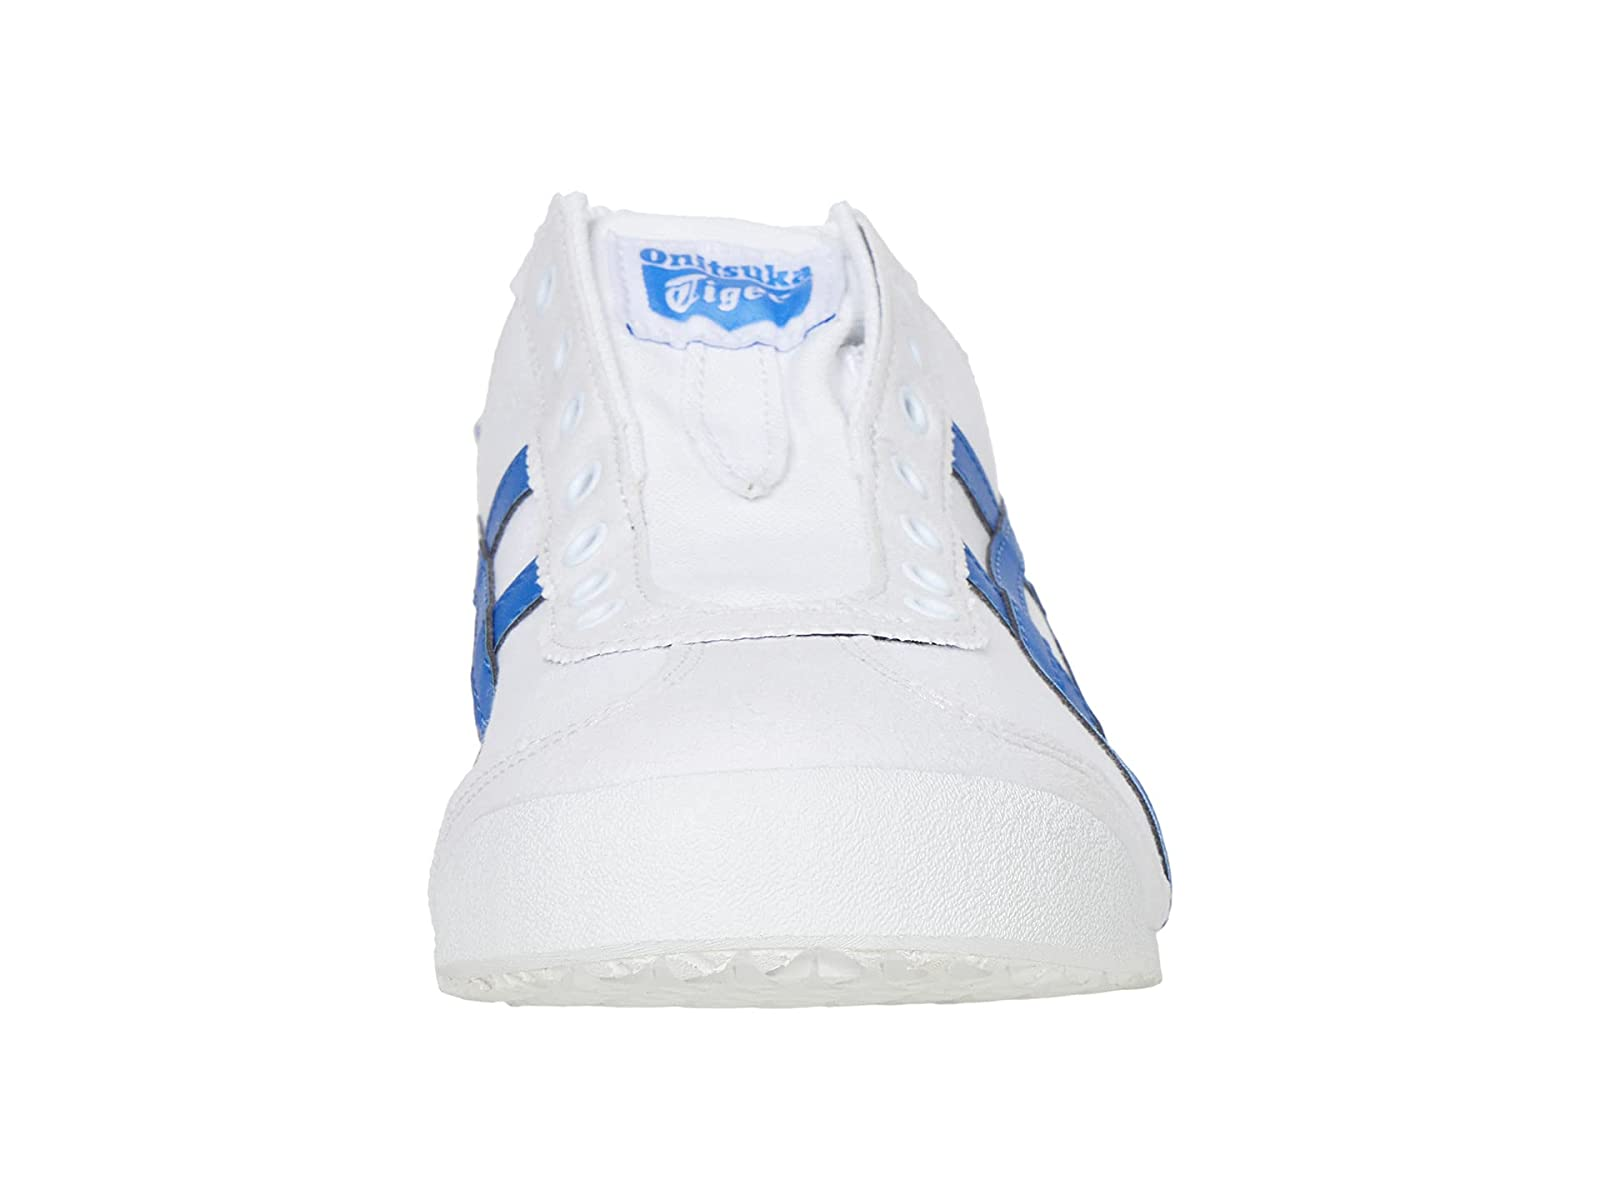 miniature 19 - Adulte Unisexe Baskets & Athlétique Chaussures Onitsuka Tiger Mexico 66 Paraty